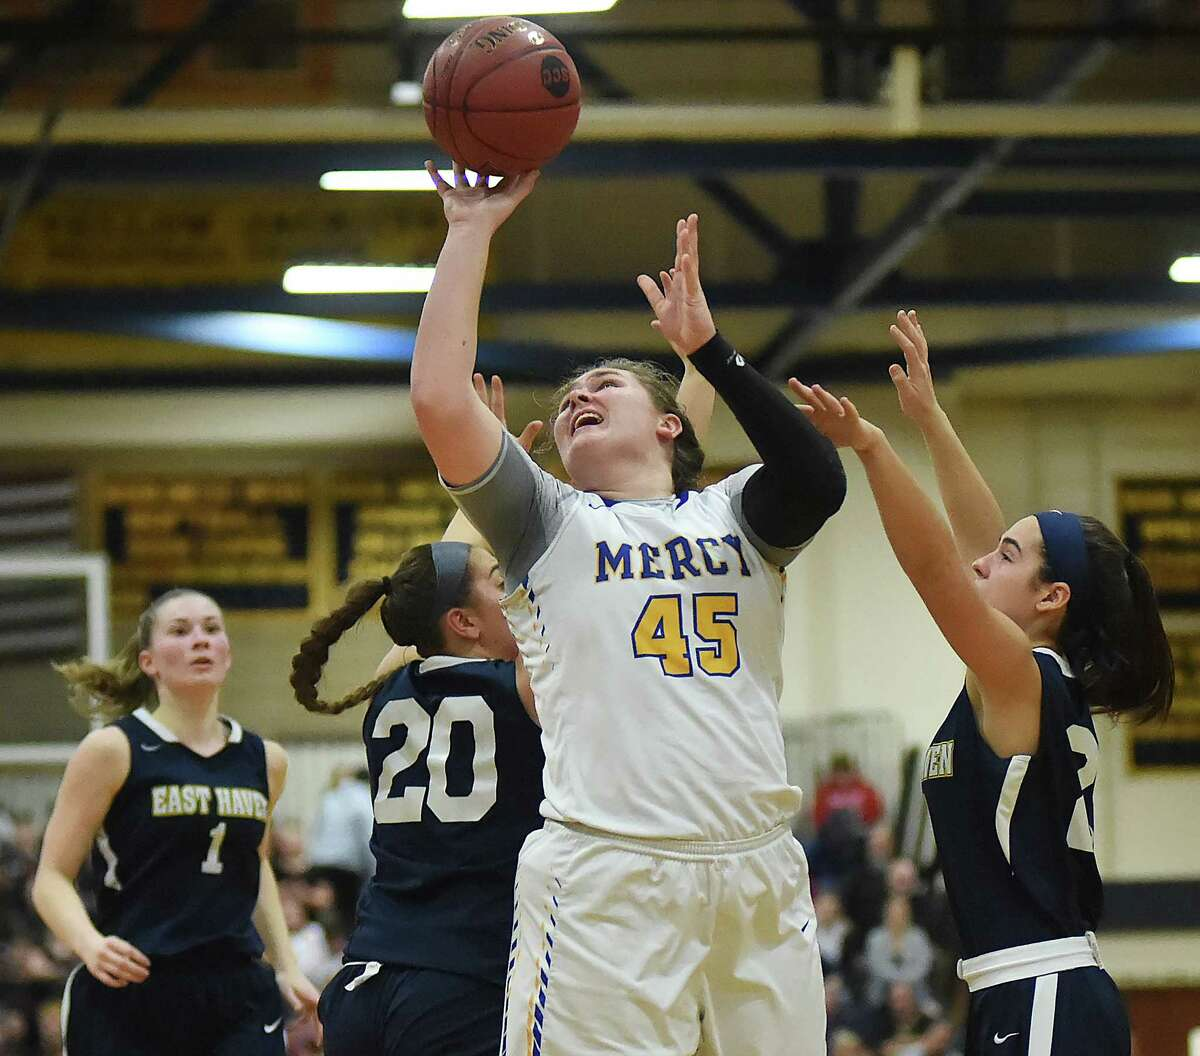 Mercy's Meg DeVille elevates for a two as East Haven Jessica Stettinger (20) and Isabella Ragaini (21) defends Wednesday, Feb. 21, 2018, in the SCC championship game at East Haven High School. Mercy won, 64-40.